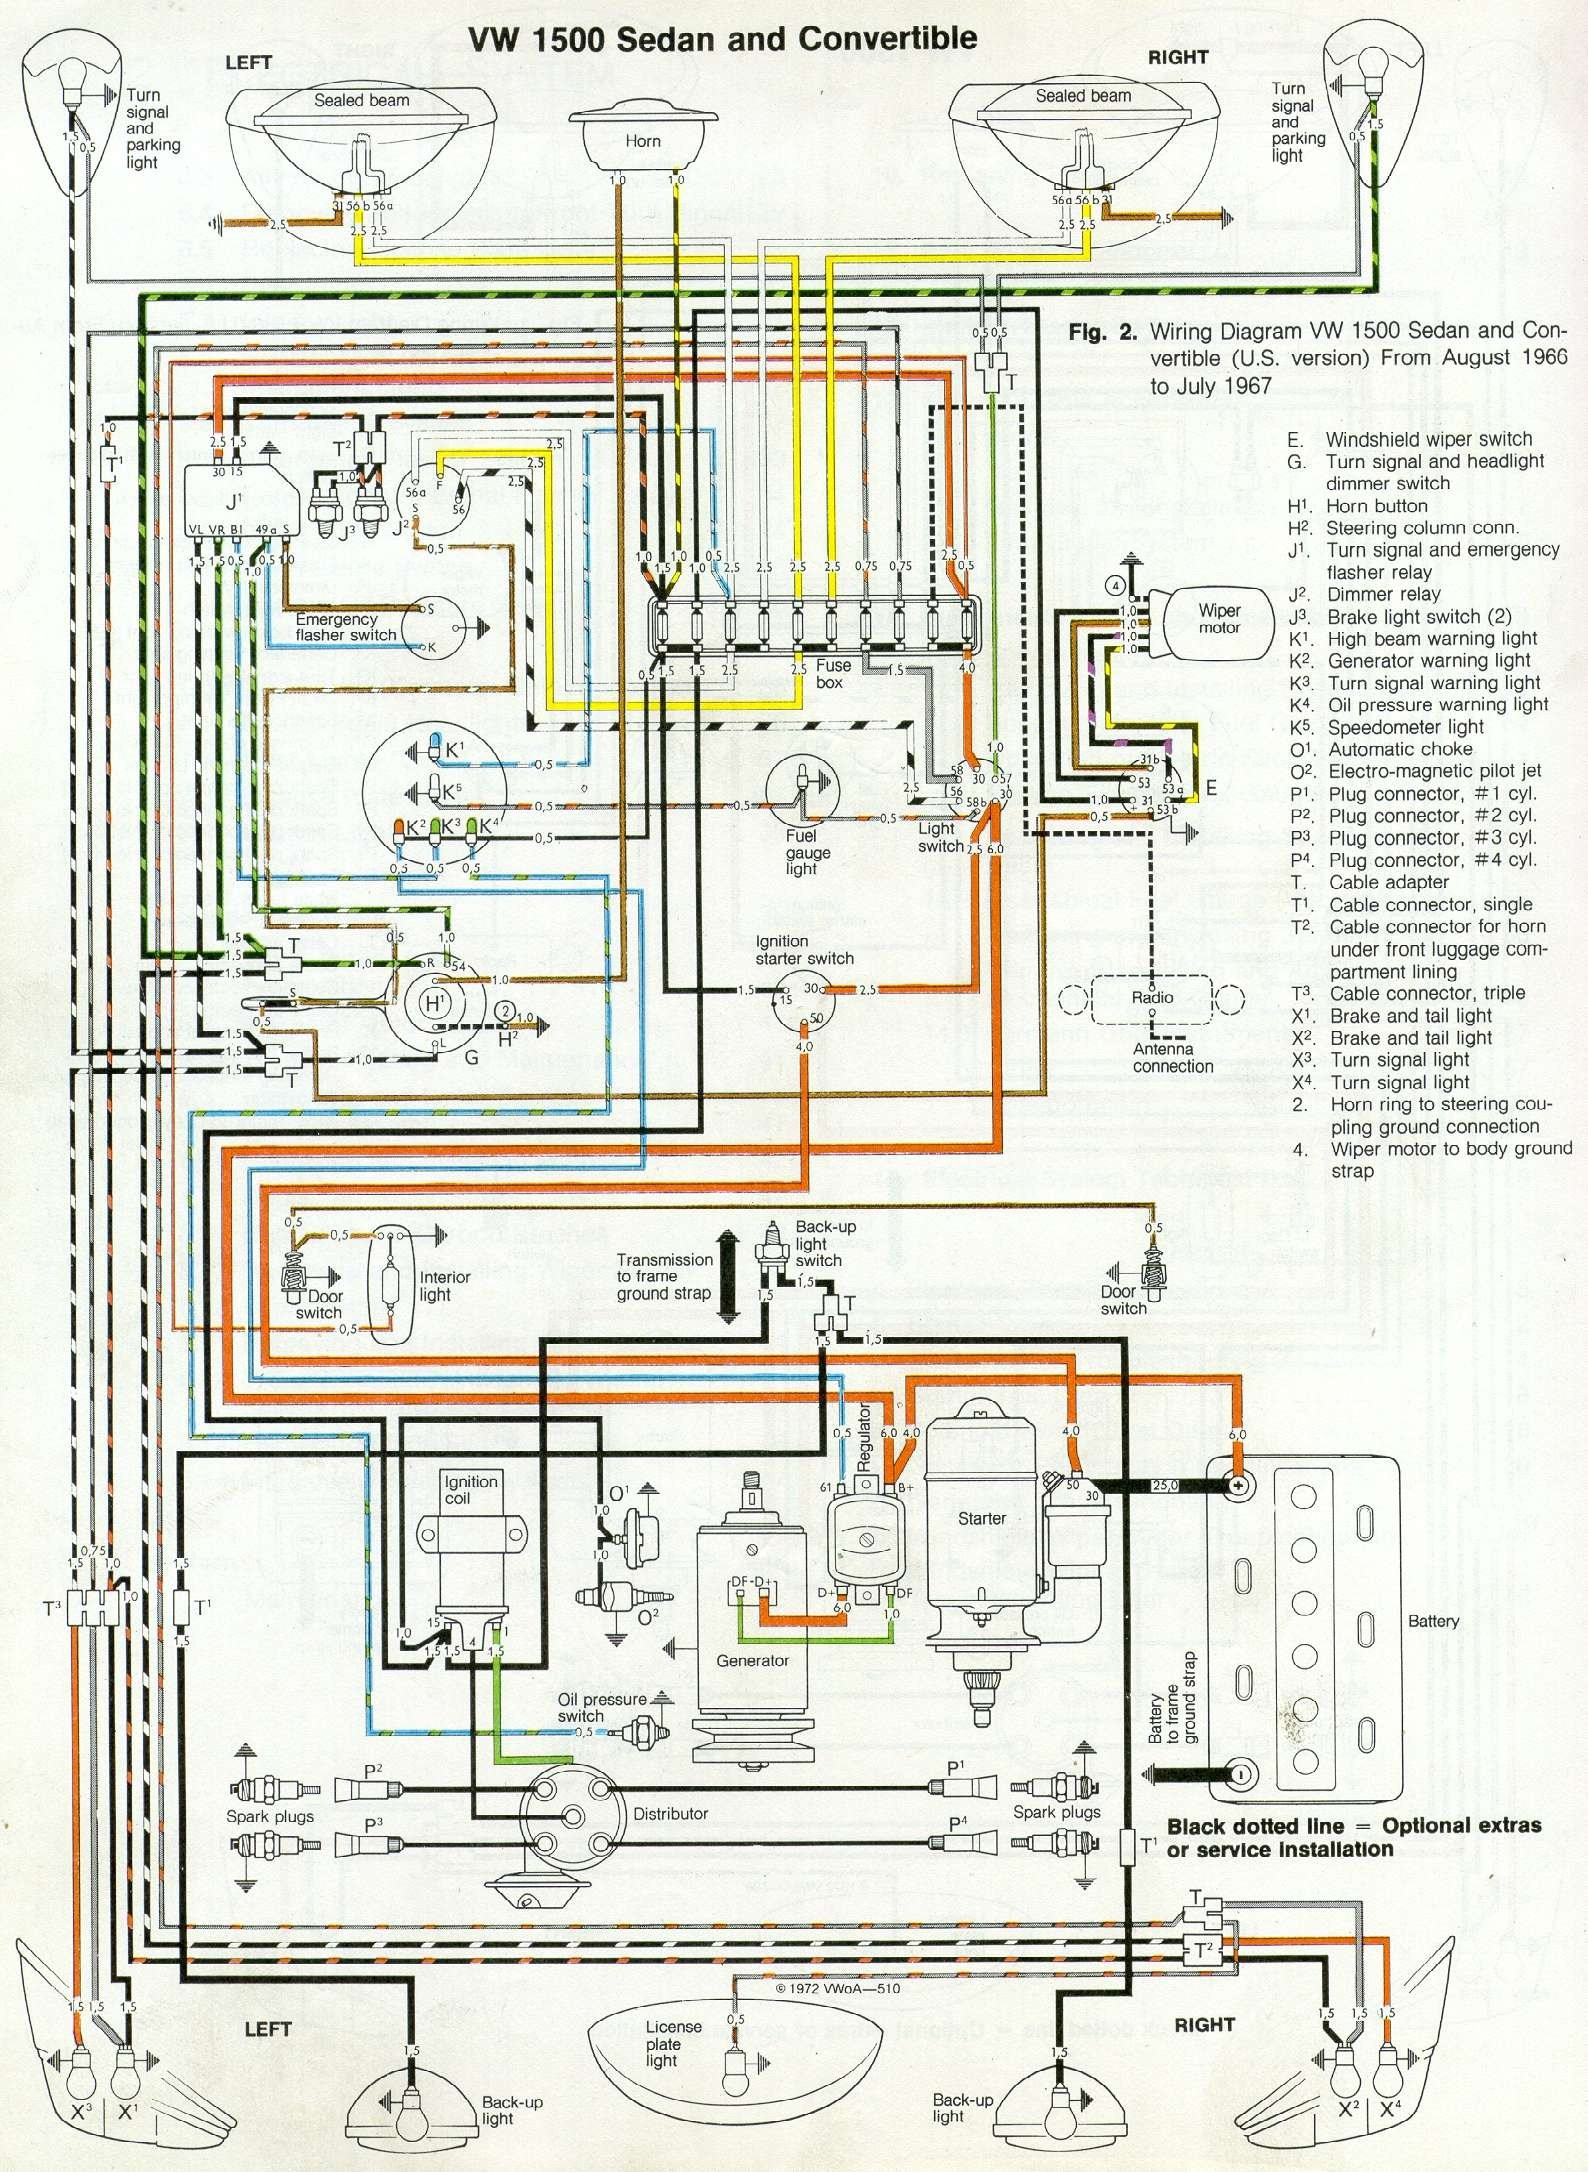 VW Beetle Wiring Digram 67 beetle wiring diagram u s version 1967 vw beetle vw bug wiring diagram at webbmarketing.co